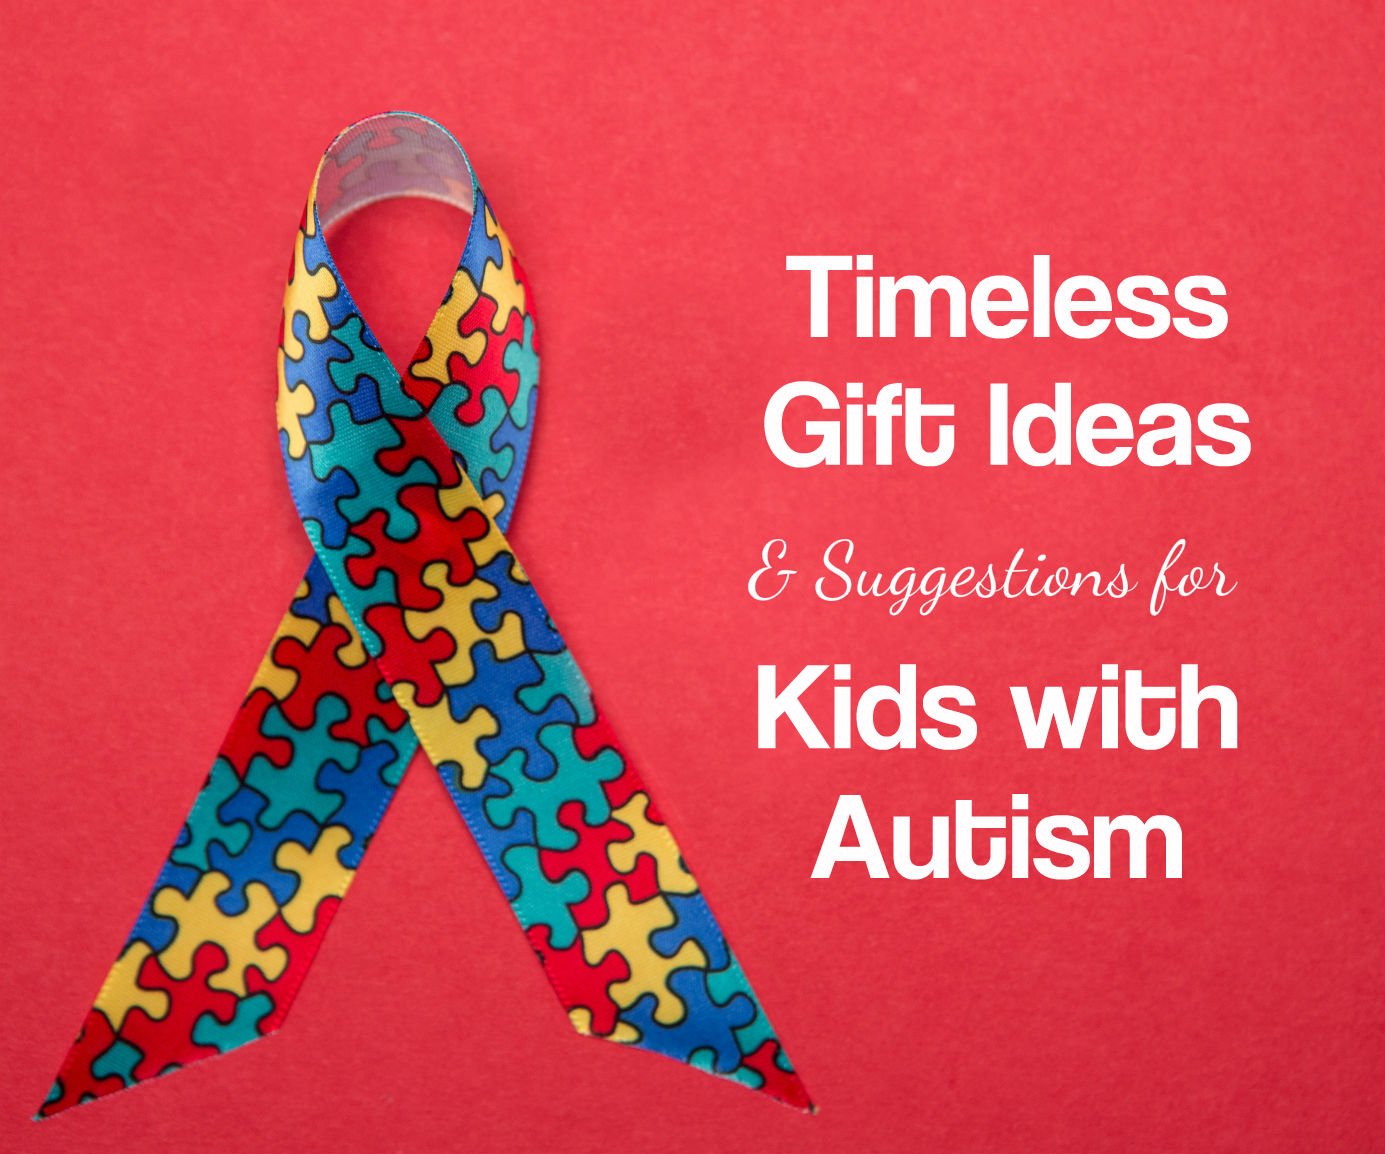 Gift Ideas for Kids with Autism